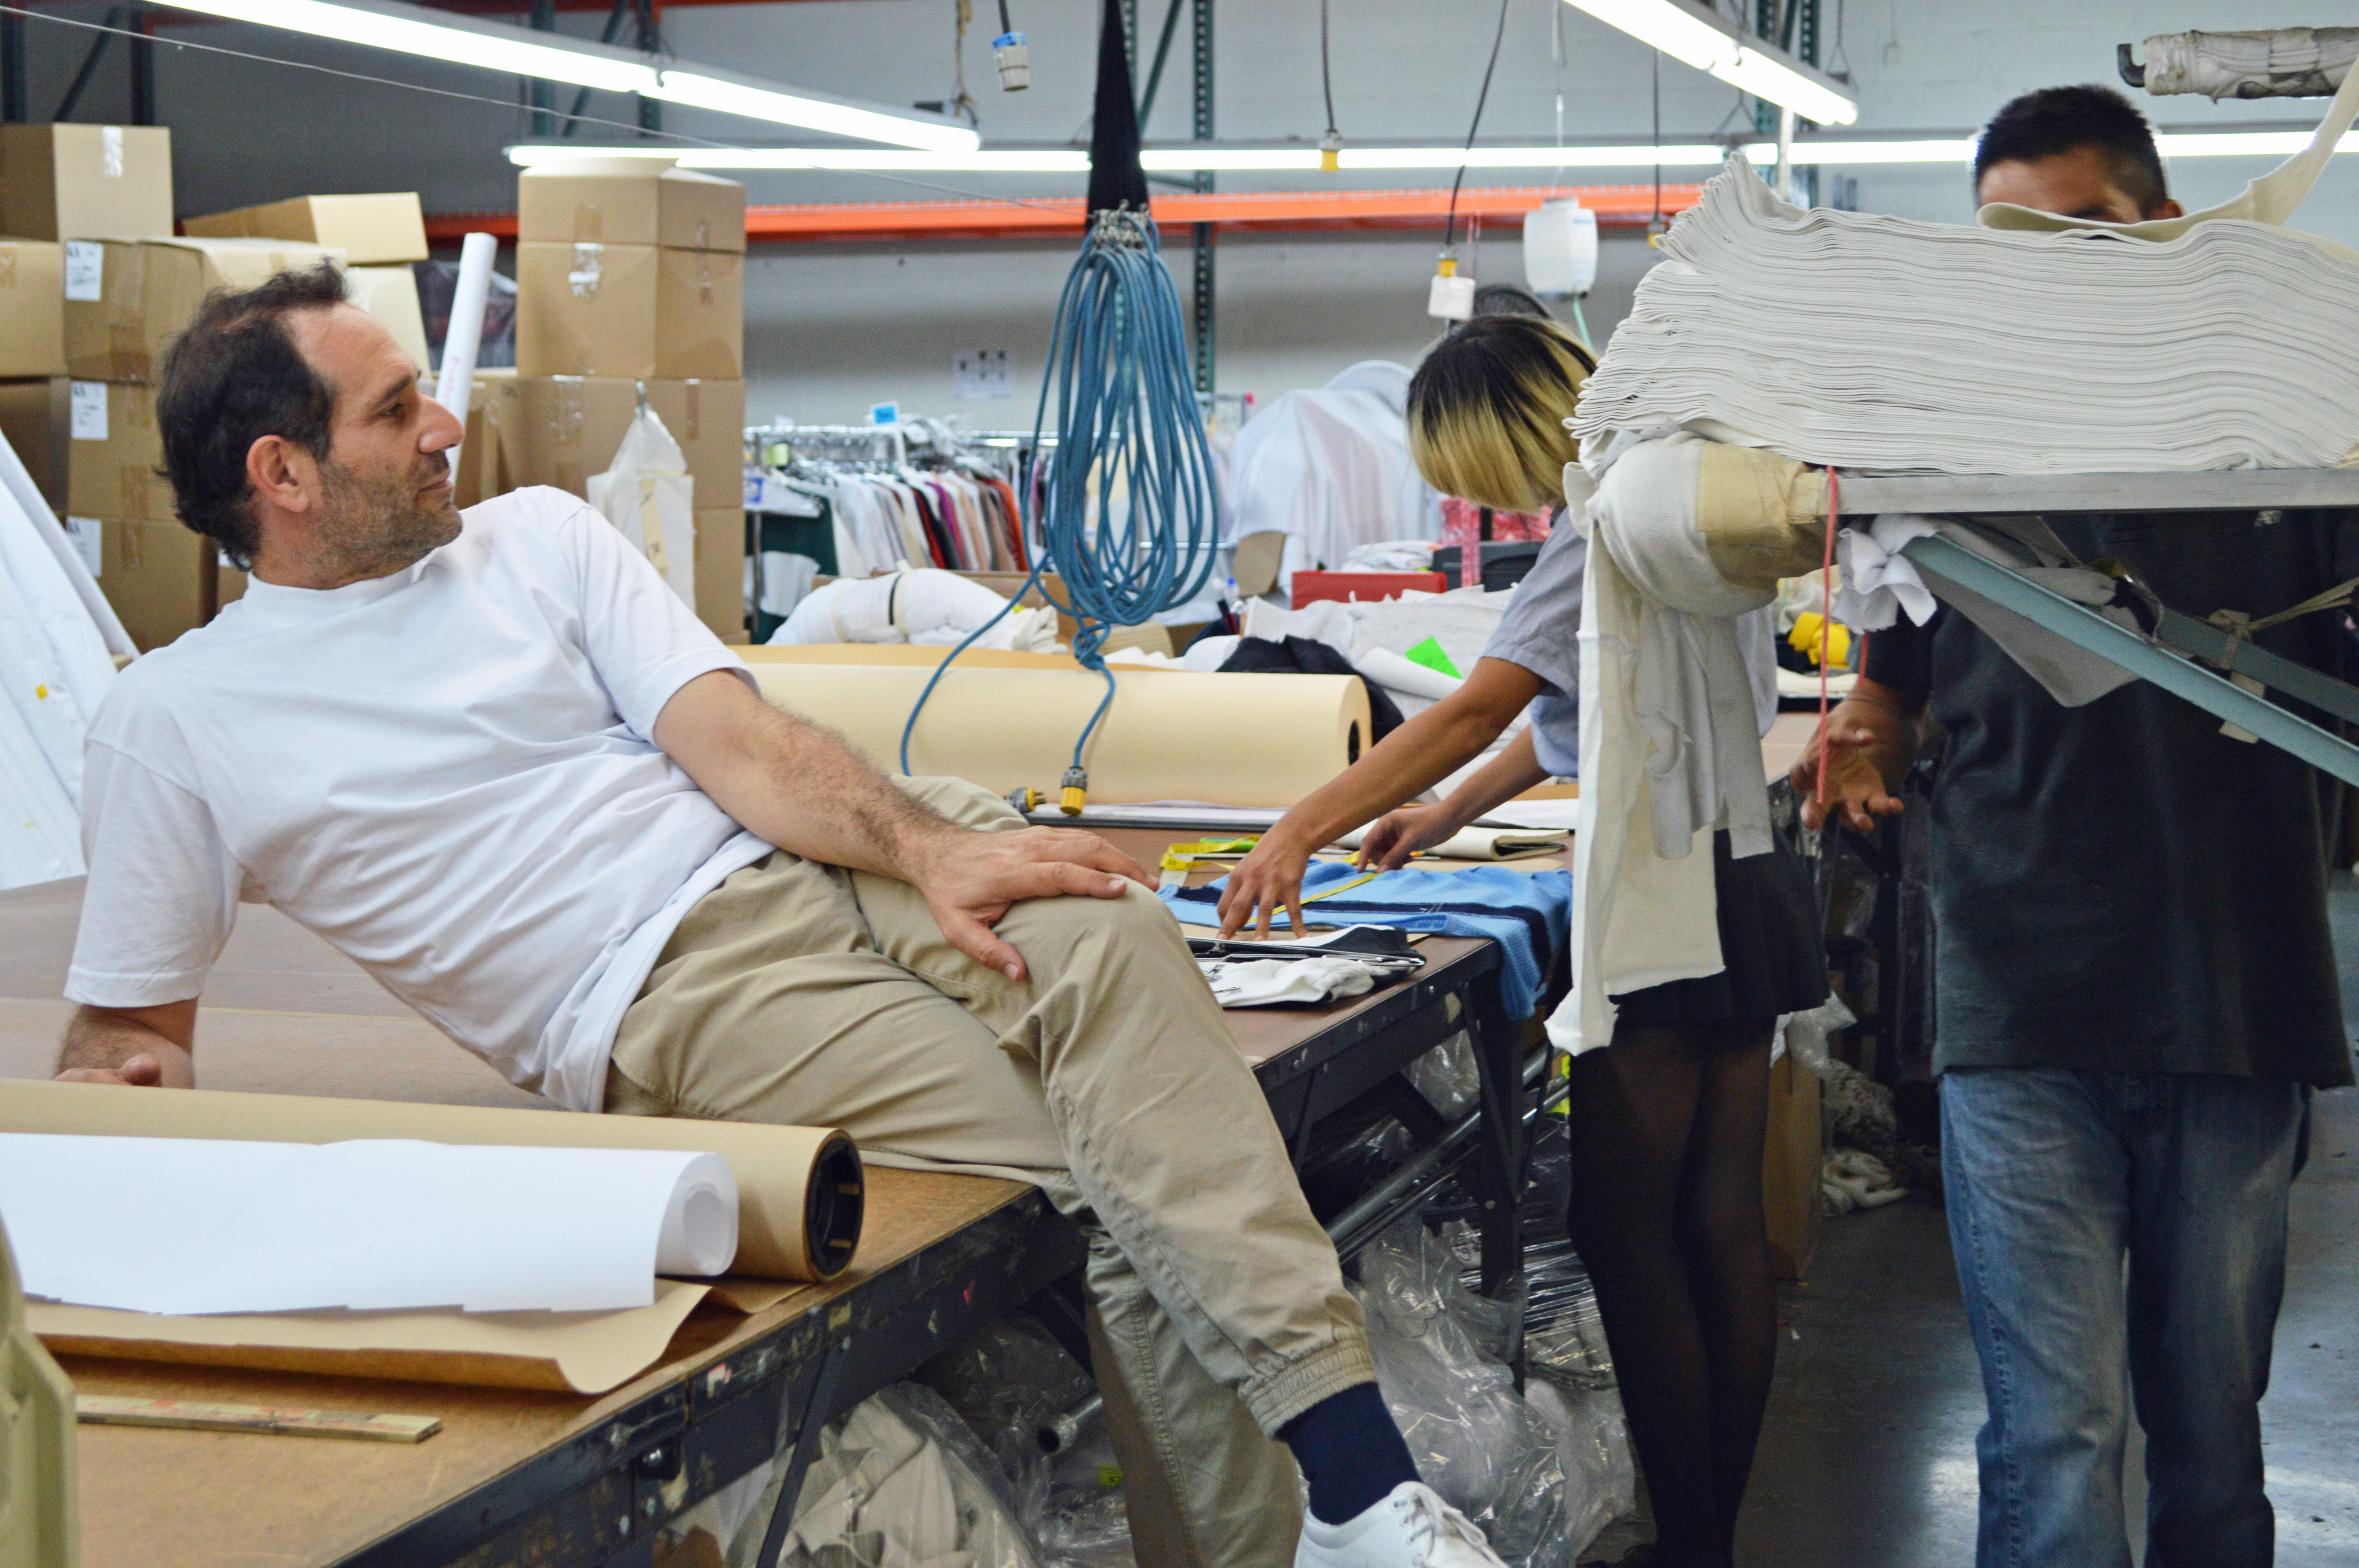 Dov Charney on South Central factory floor